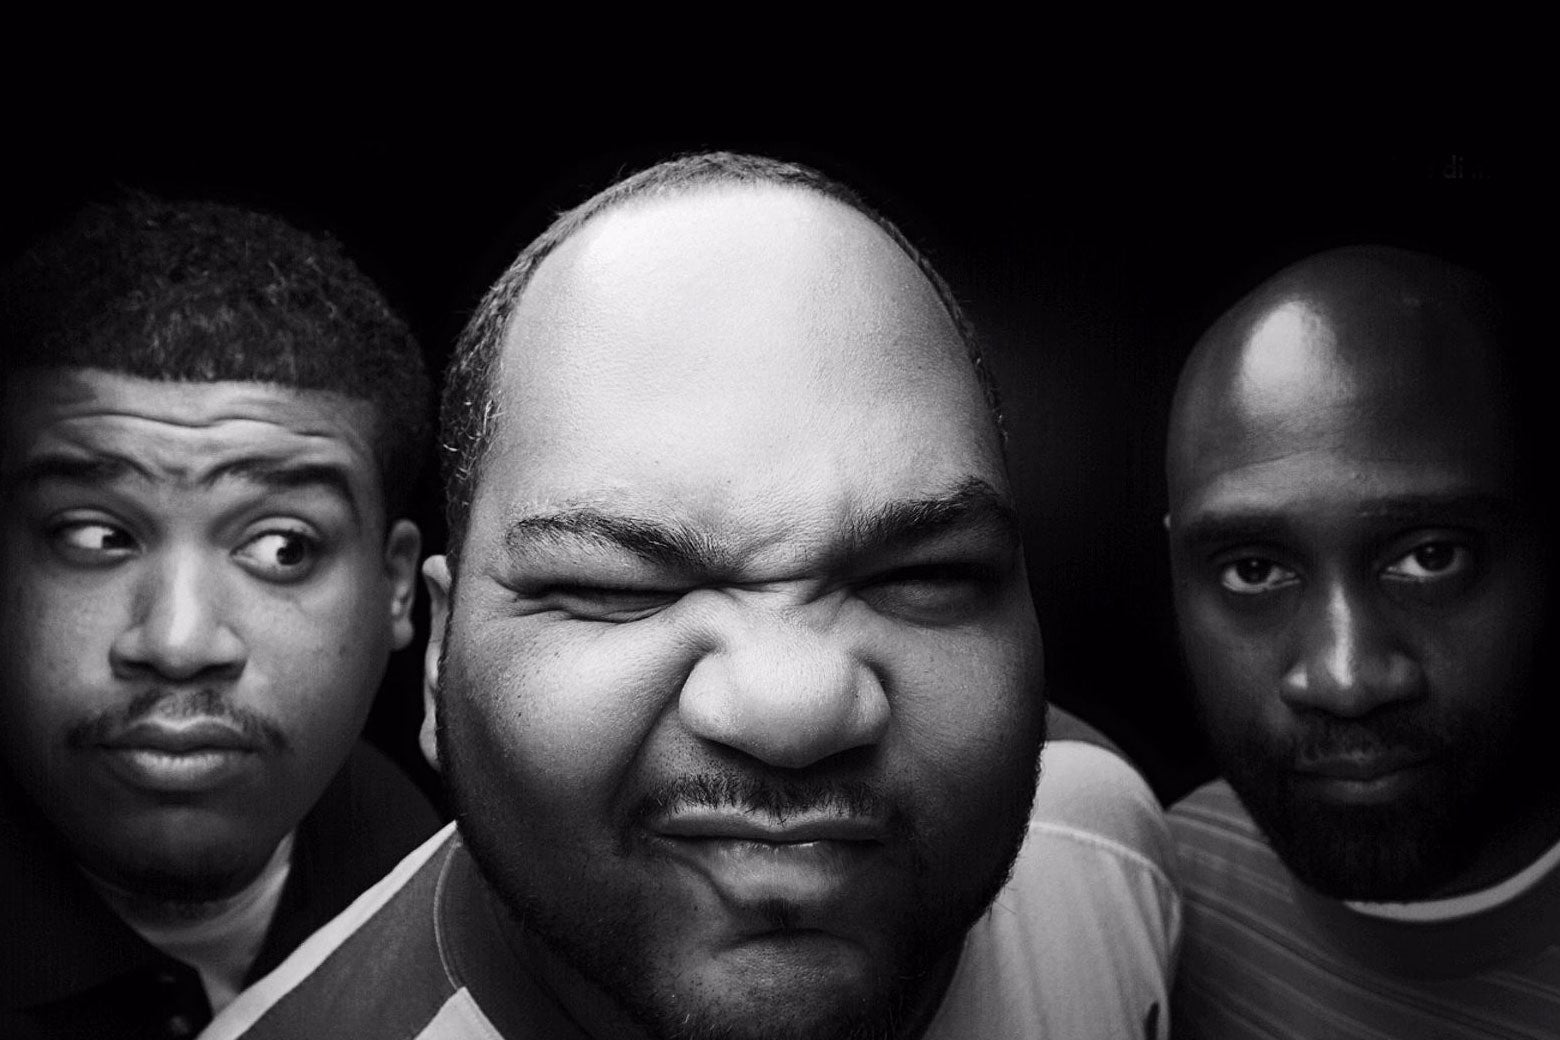 A black-and-white photo of the members of De La Soul.